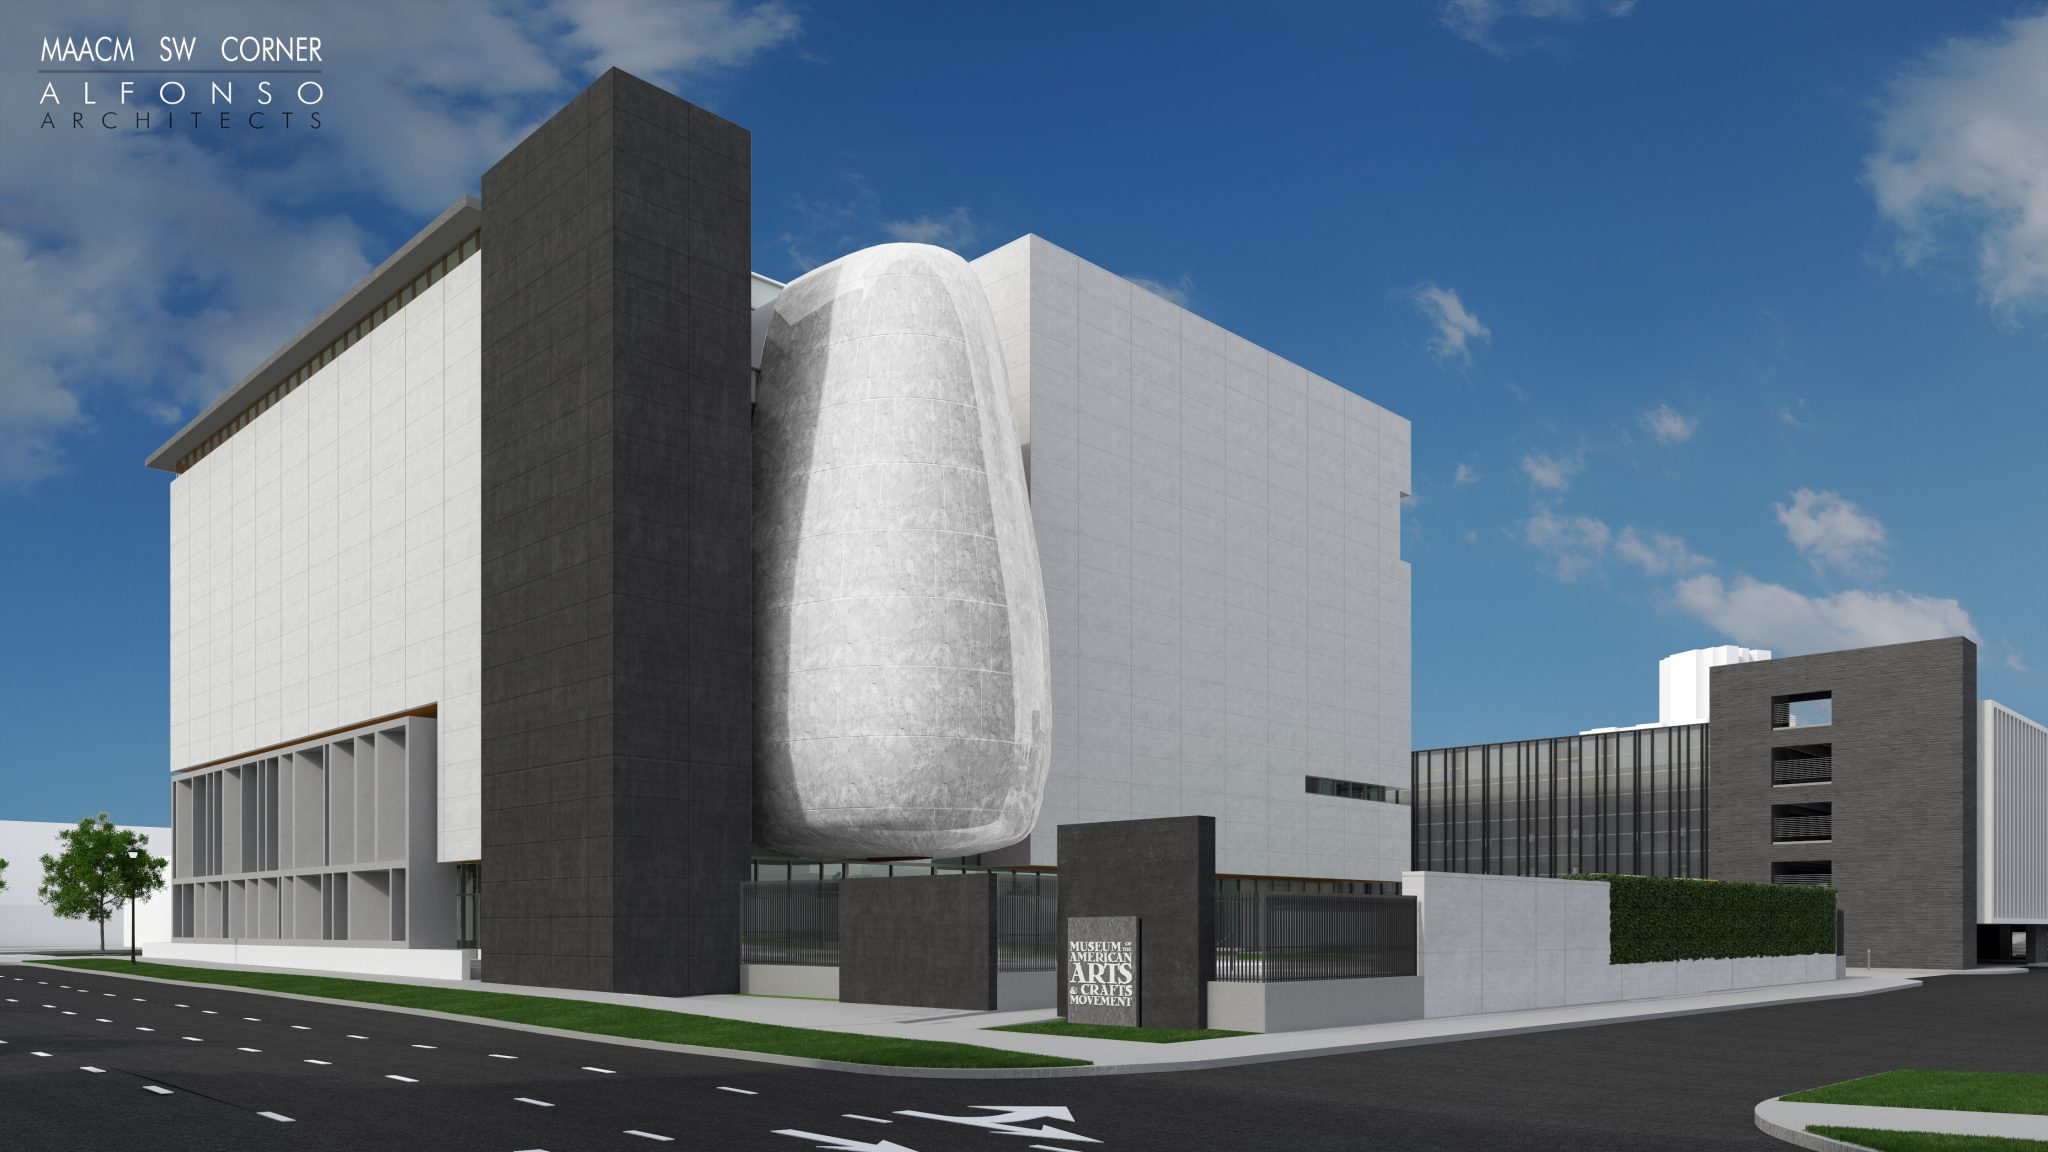 The Museum of the American Arts and Crafts Movement (MAACM) will open later this year at 4th Ave N & 4th St N in Downtown St. Pete.